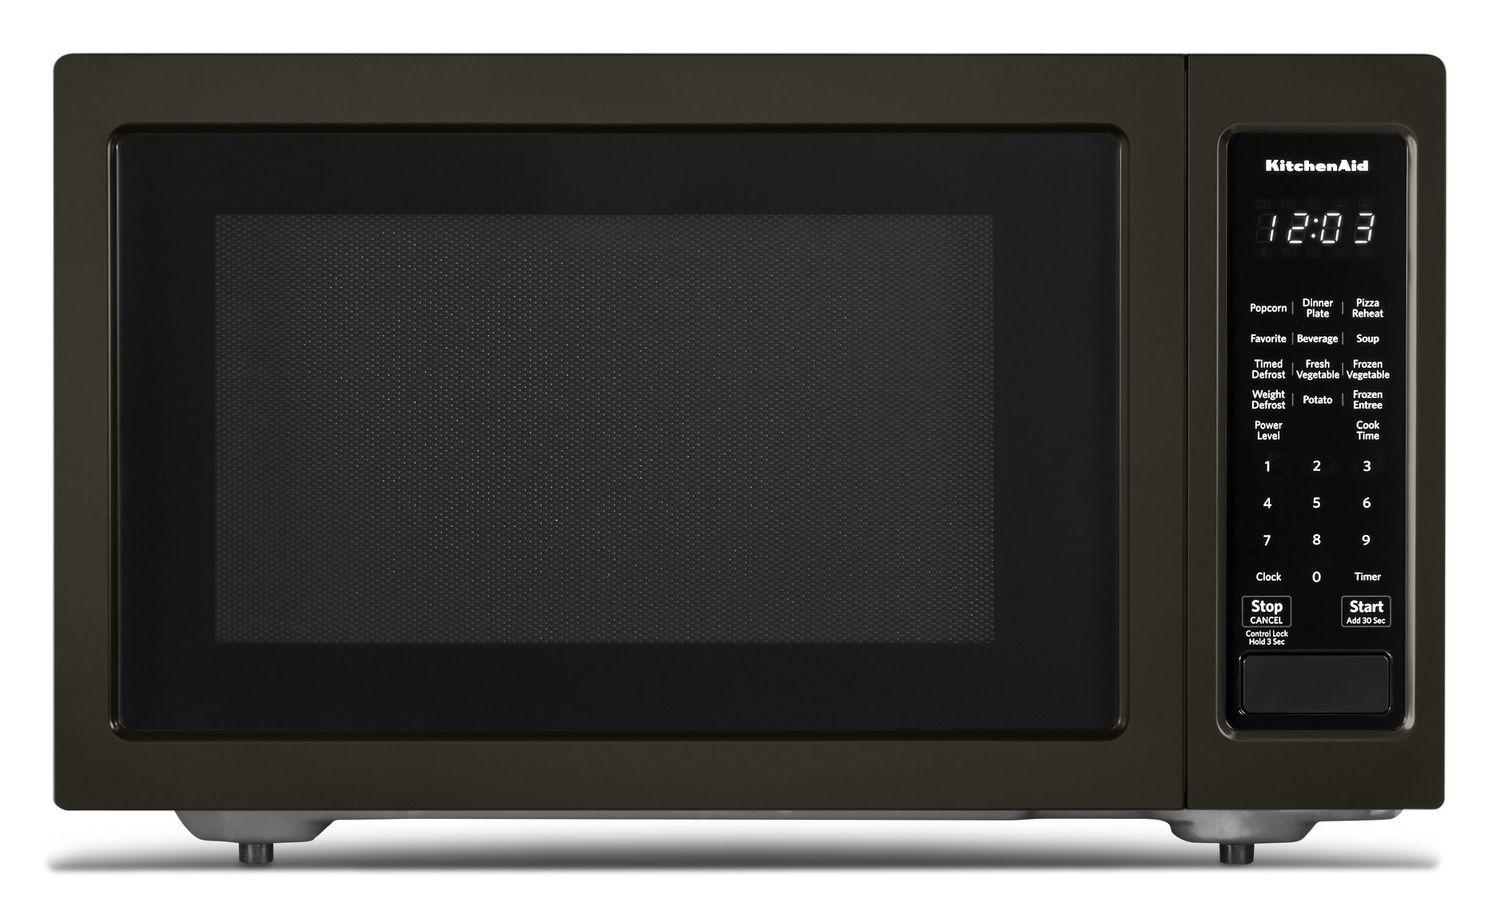 """21 3/4"""" Countertop Microwave Oven with PrintShield™ Finish - 1200 Watt Black Stainless Steel with PrintShield™ Finish"""